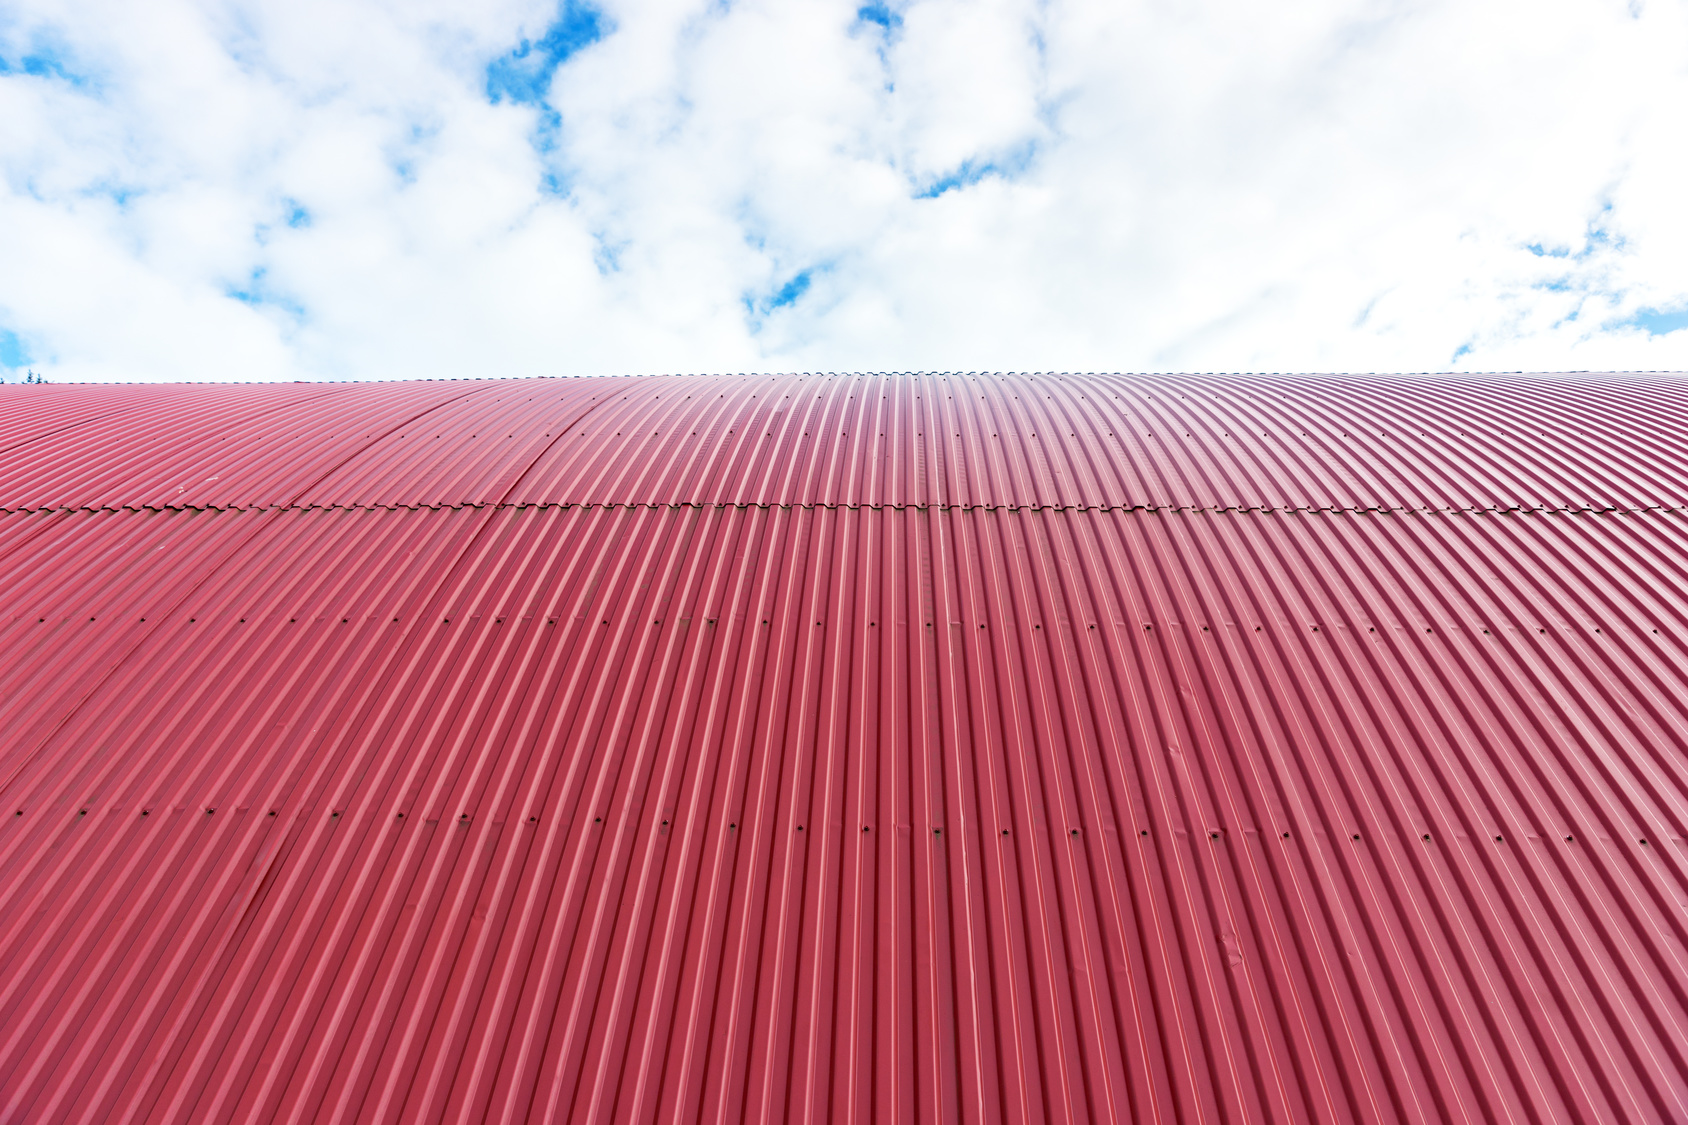 3 Differences Between Corrugated Metal Roofing And